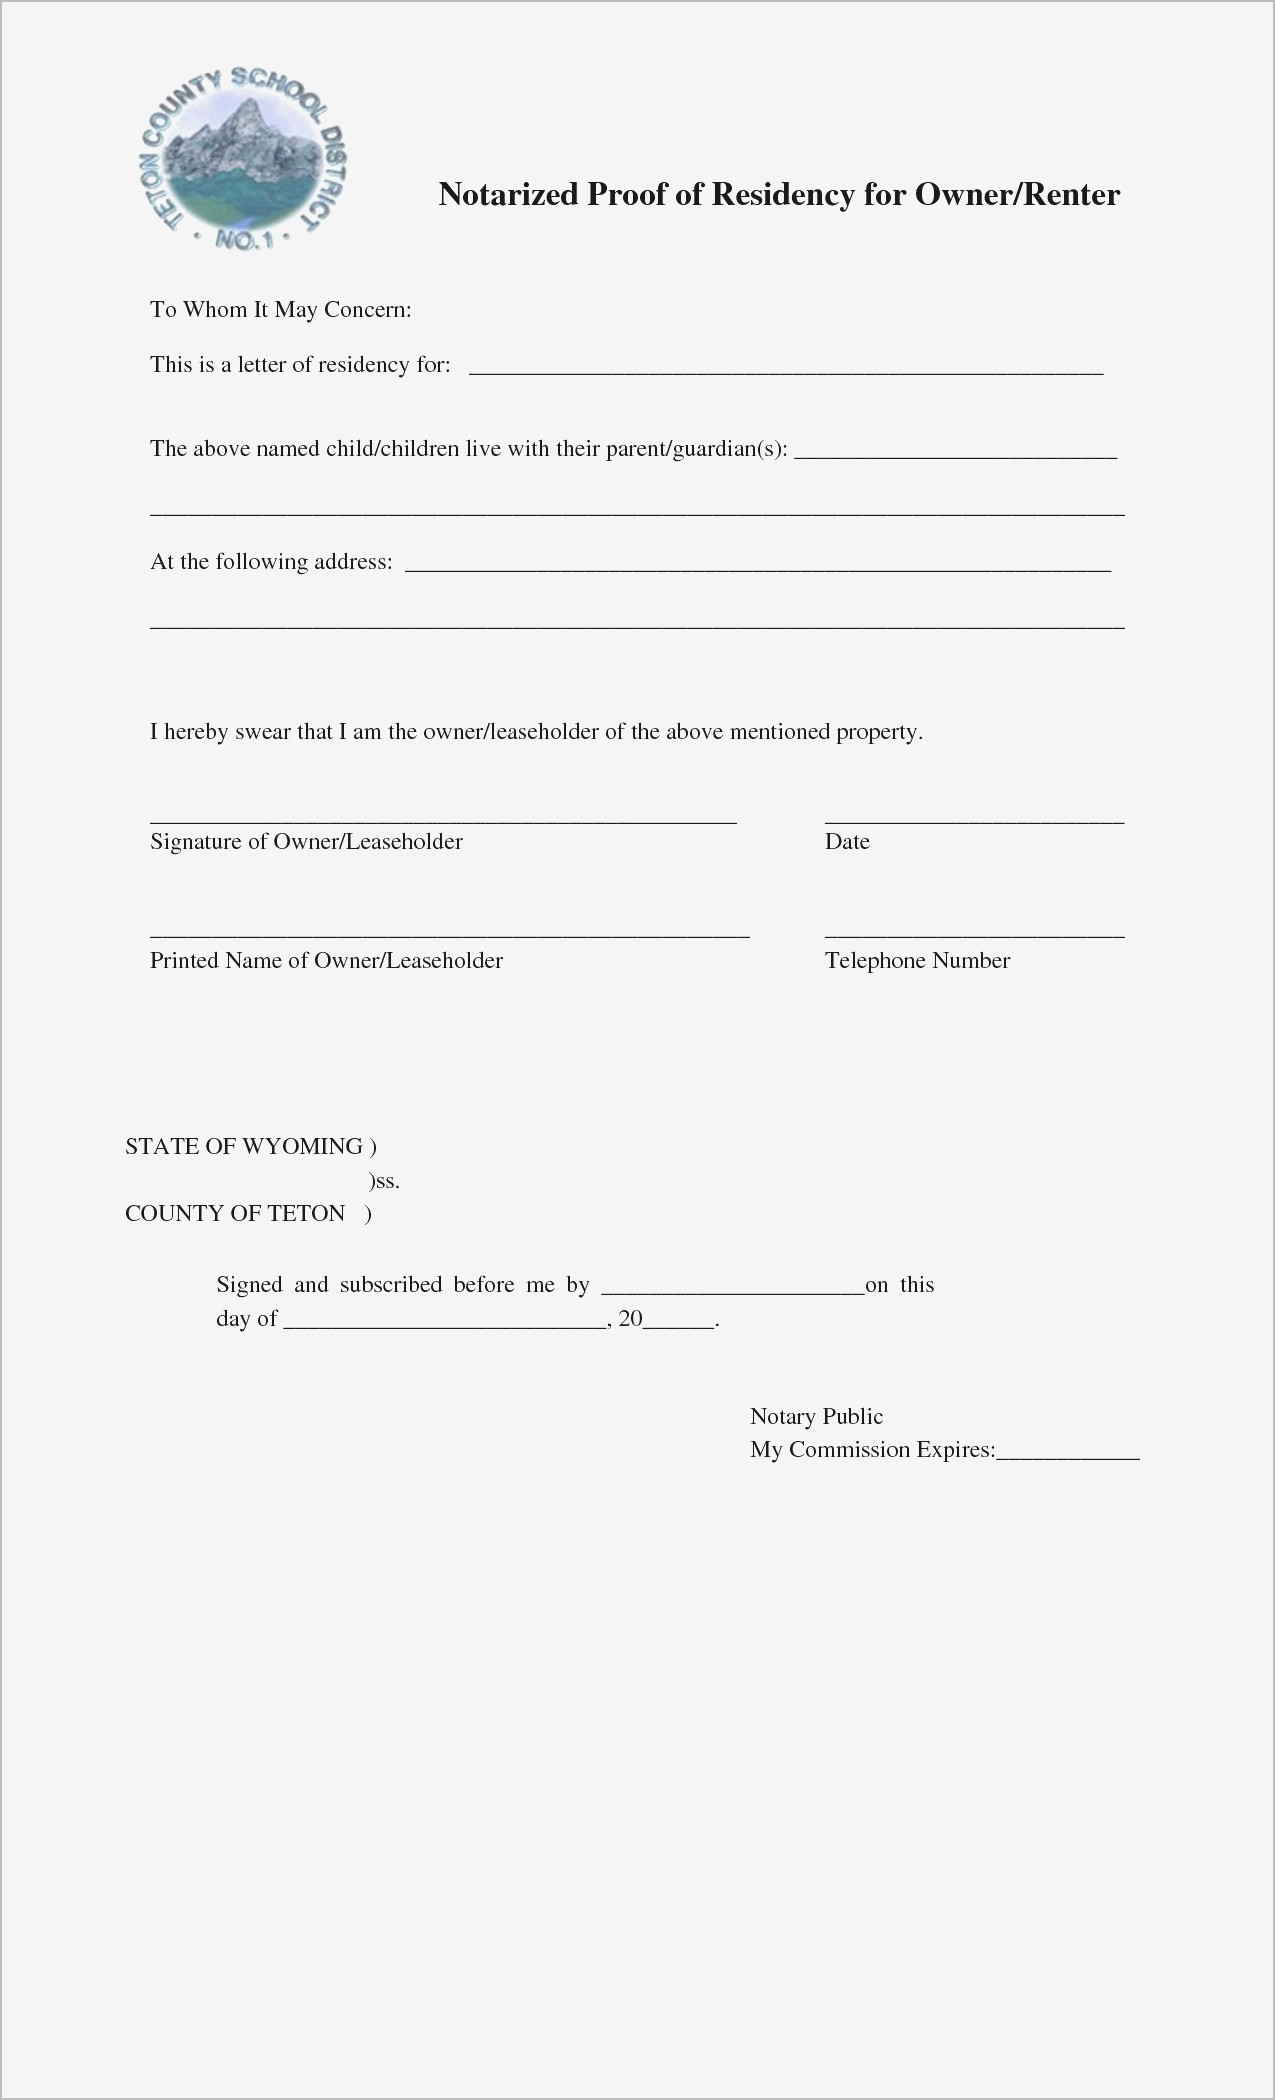 Notarized Letter Template for Residency - Notary forms New Printable Notarized Letter Residency Template